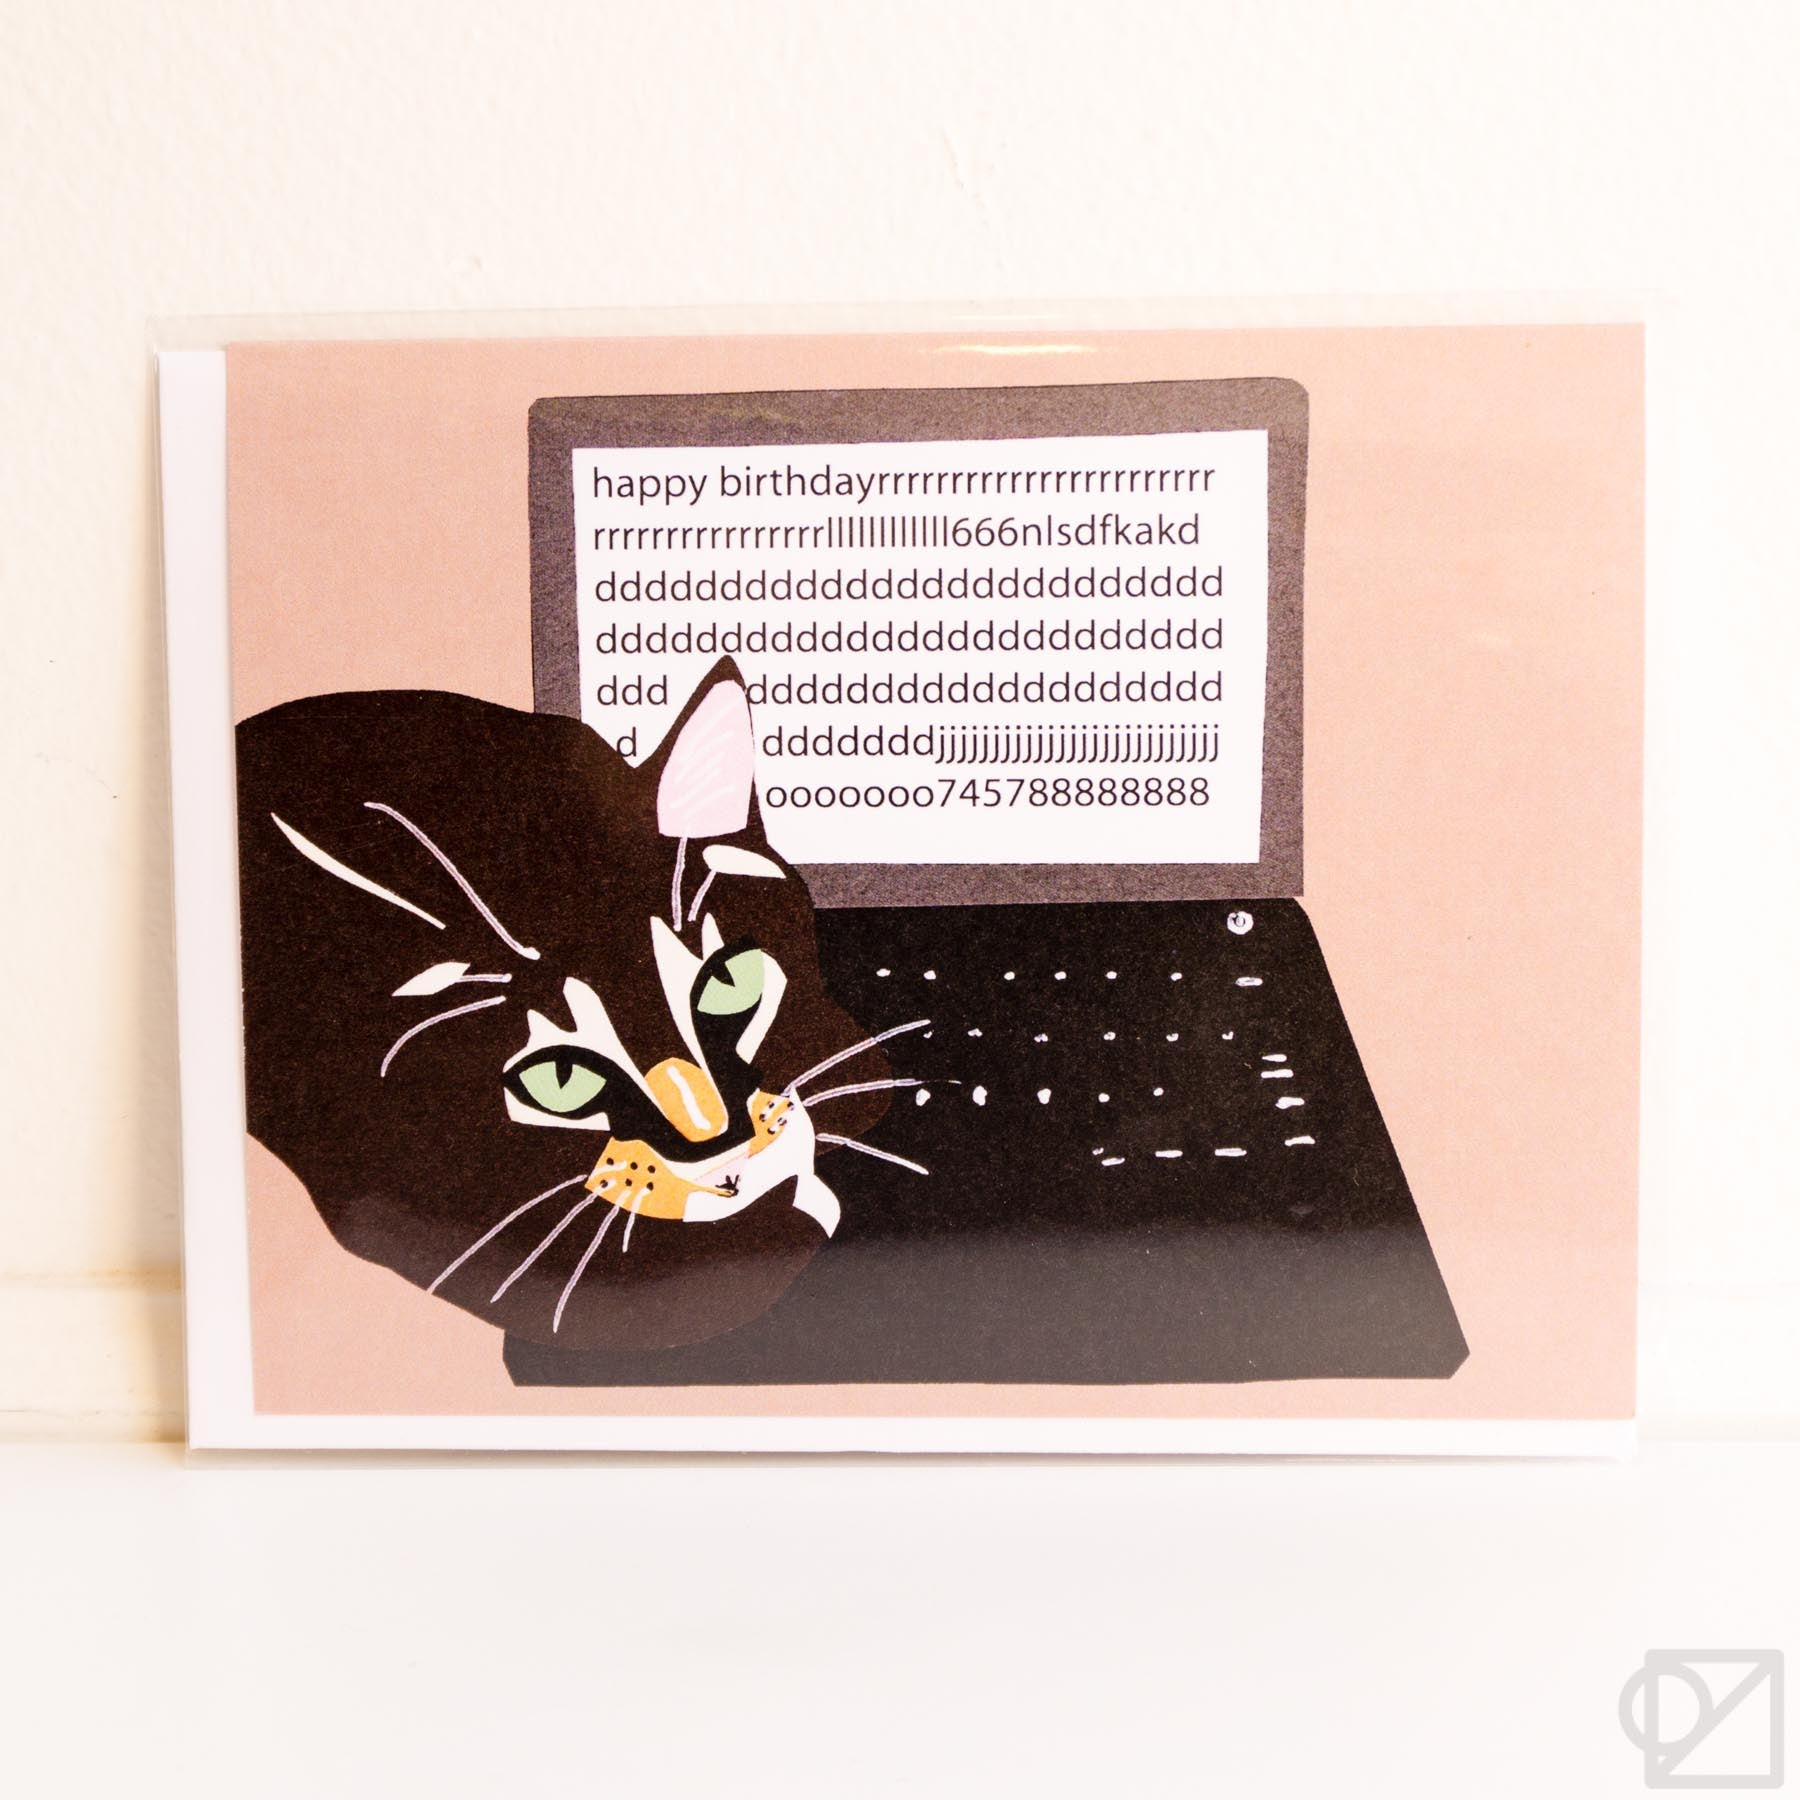 Cat on Keyboard Birthday Greeting Card